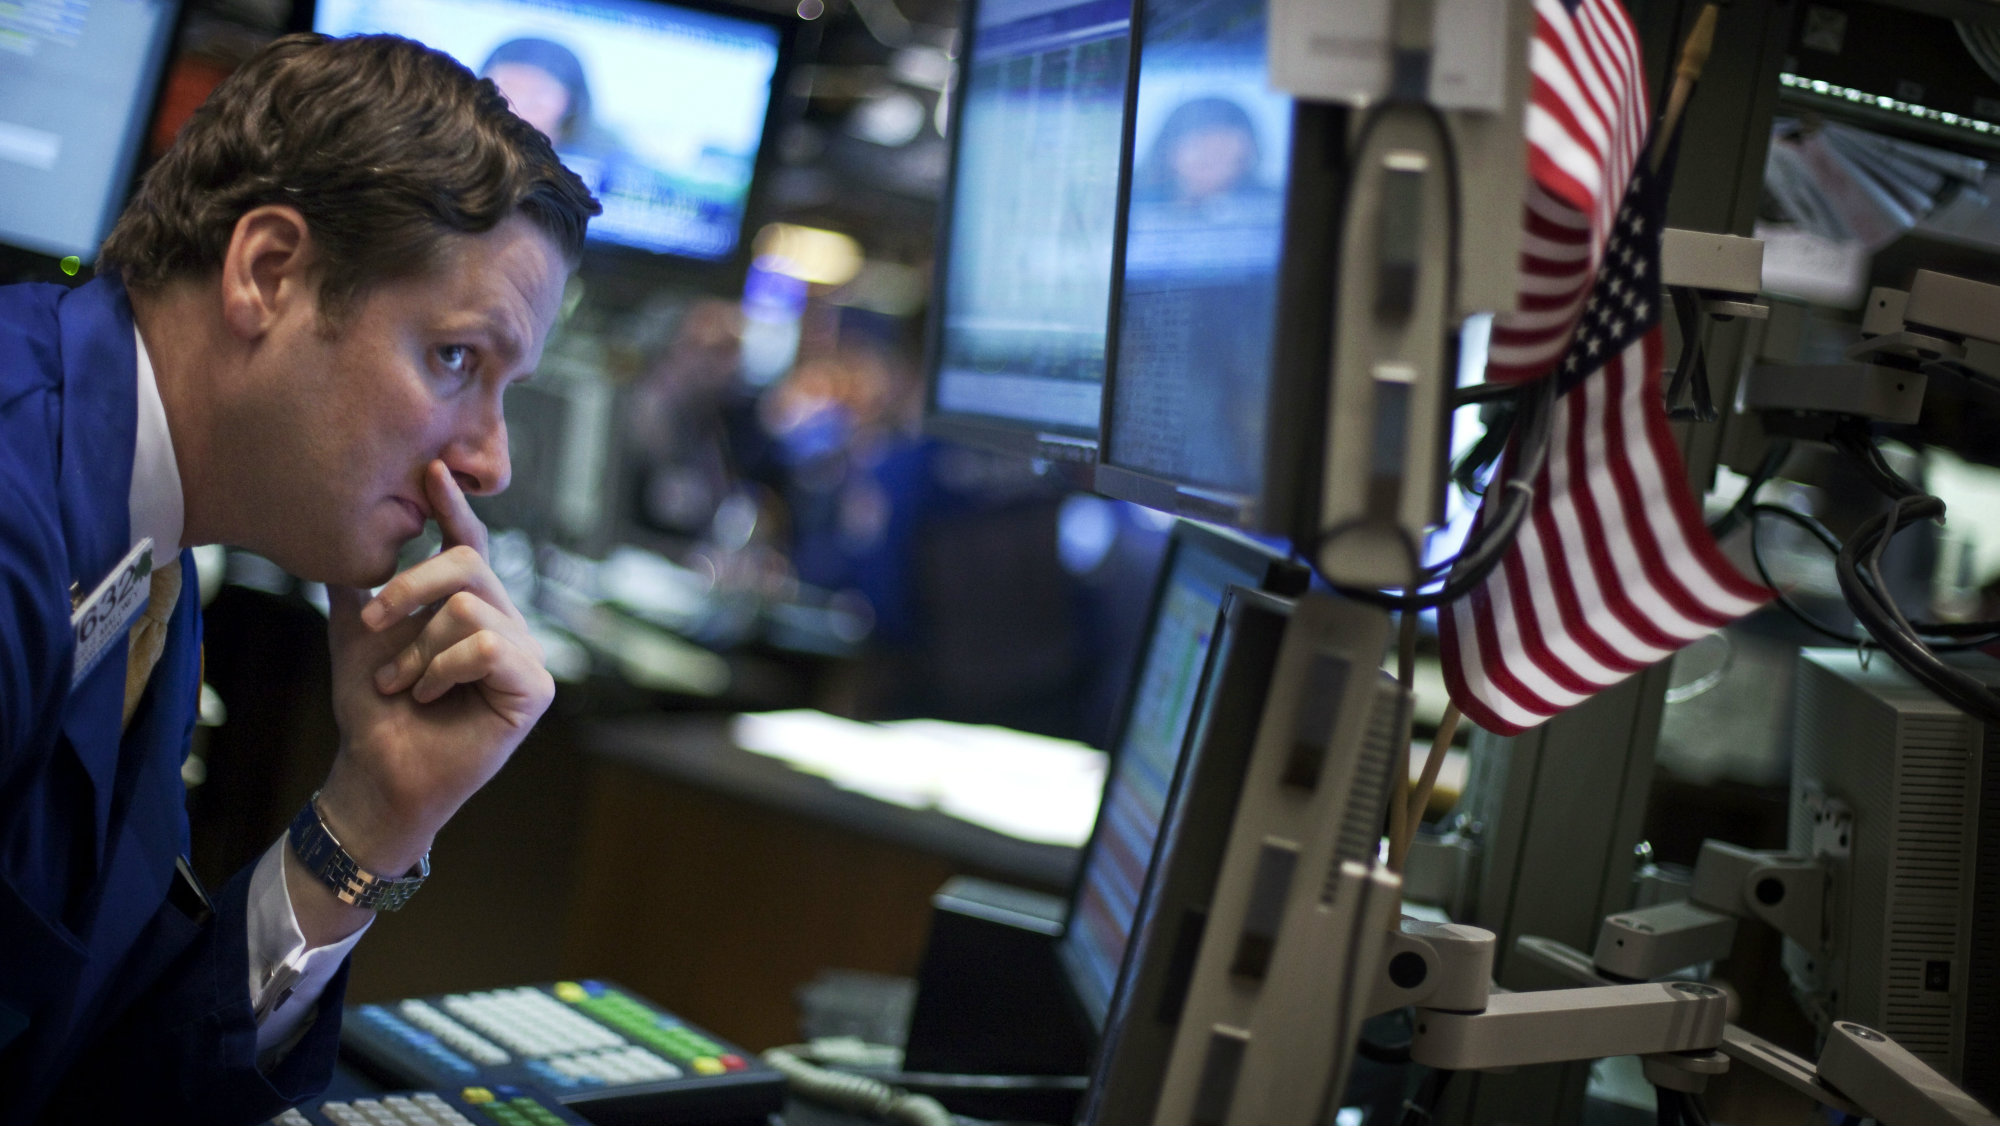 A trader looks at his screens while working on the floor of the New York Stock Exchange.